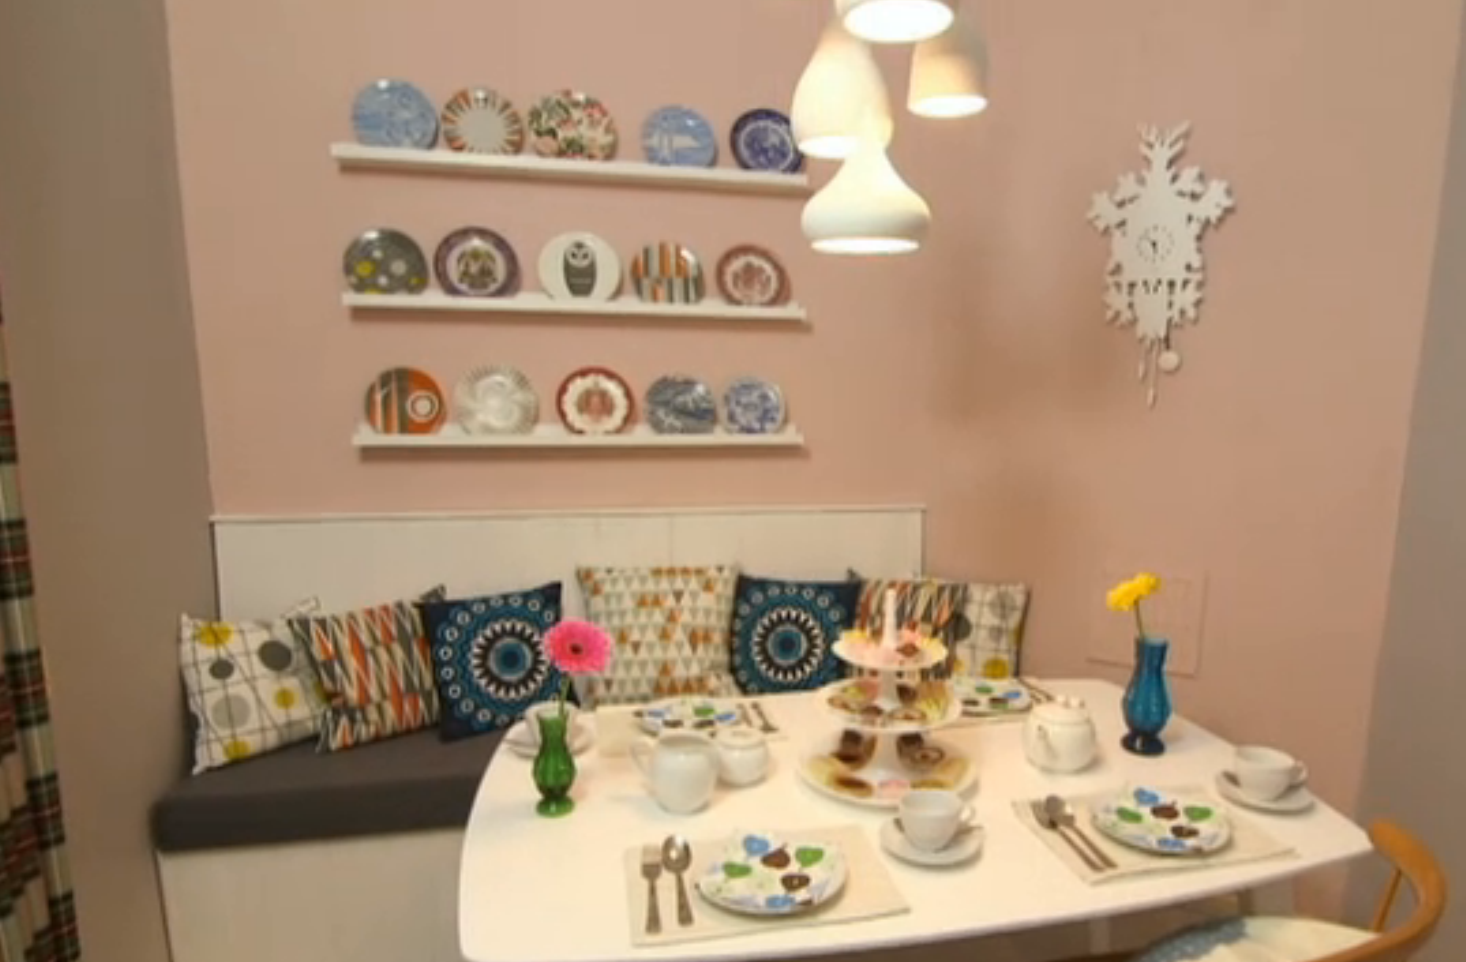 Mini moderns on peter andre s 60 minute makeover mini for 60 minute makeover living room designs